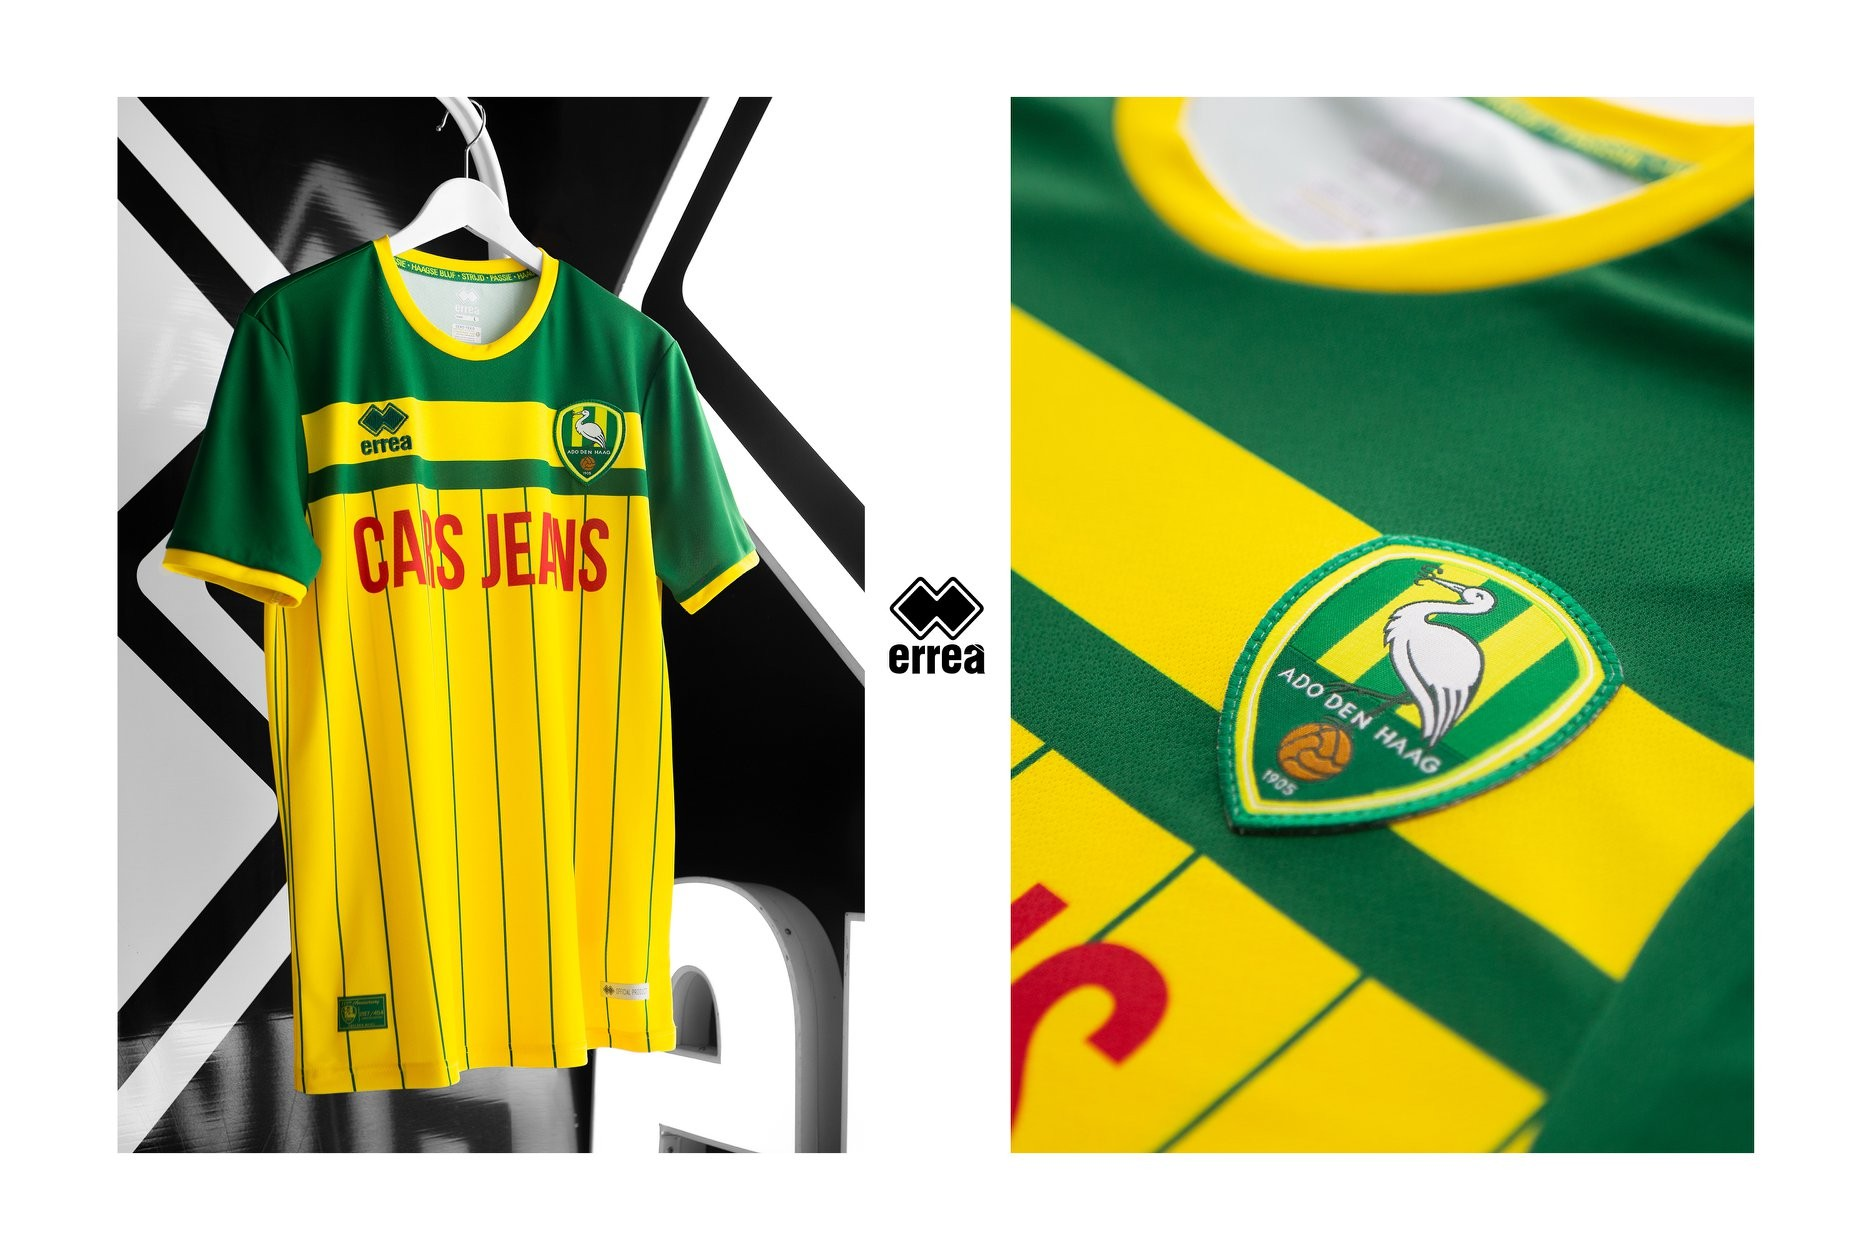 News Errea Sport And Ado Den Haag Unveil The Celebratory Shirt Produced To Mark The Club S 115th Anniversary Errea